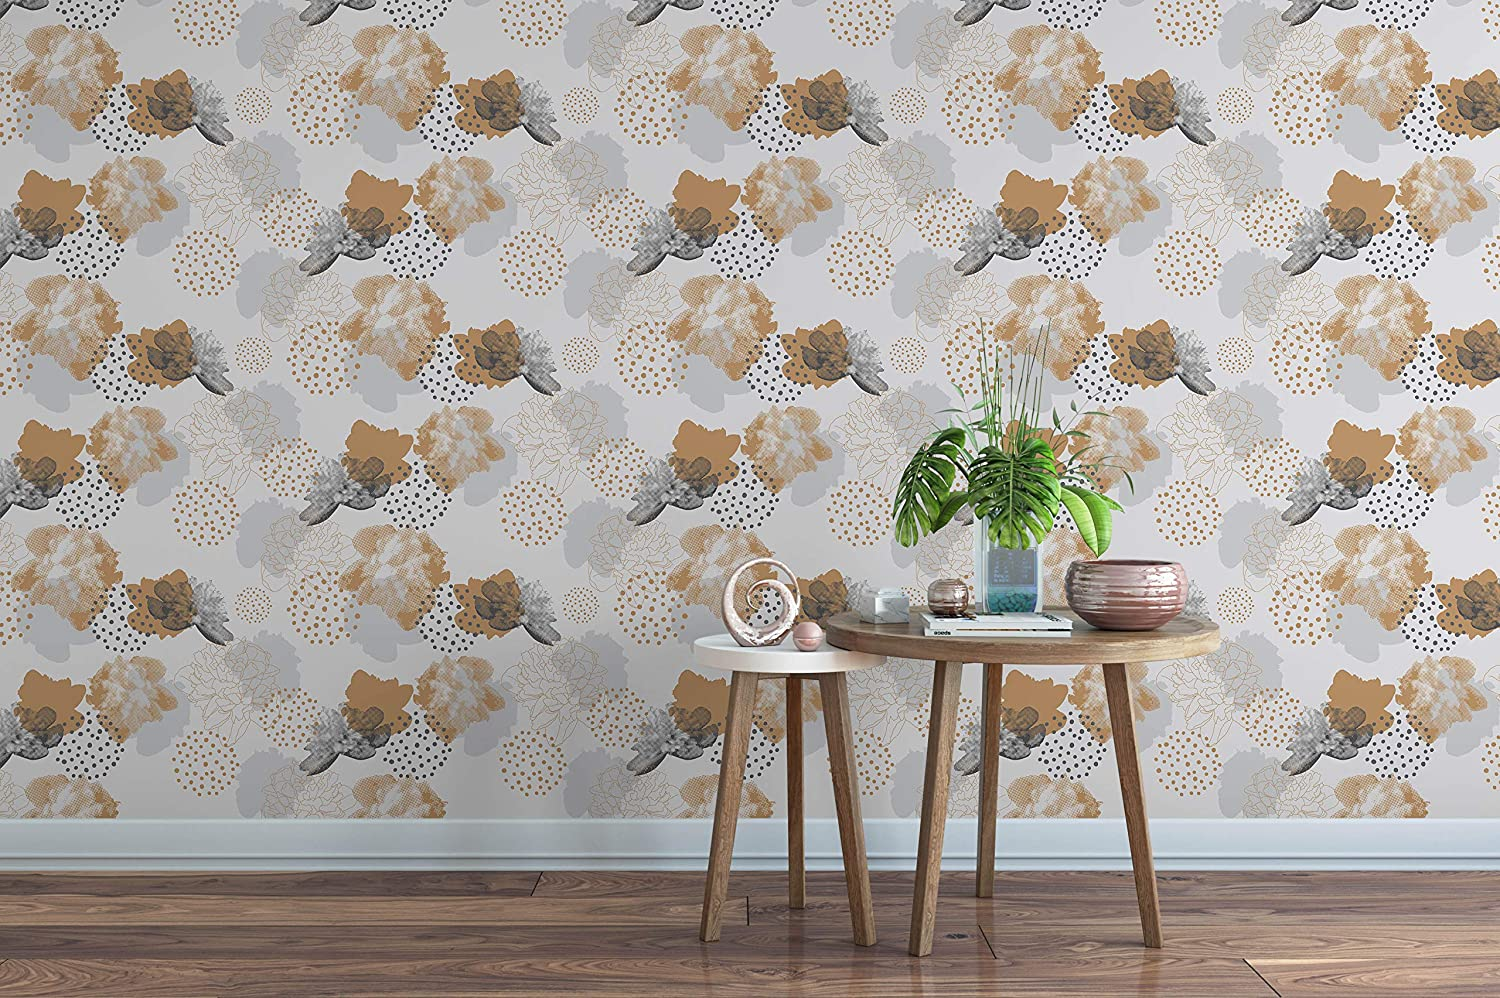 Amazon com floral self adhesive removable wallpaper with peonies flowers peel and stick wall paper temporary botanical wall decor for renters cc176